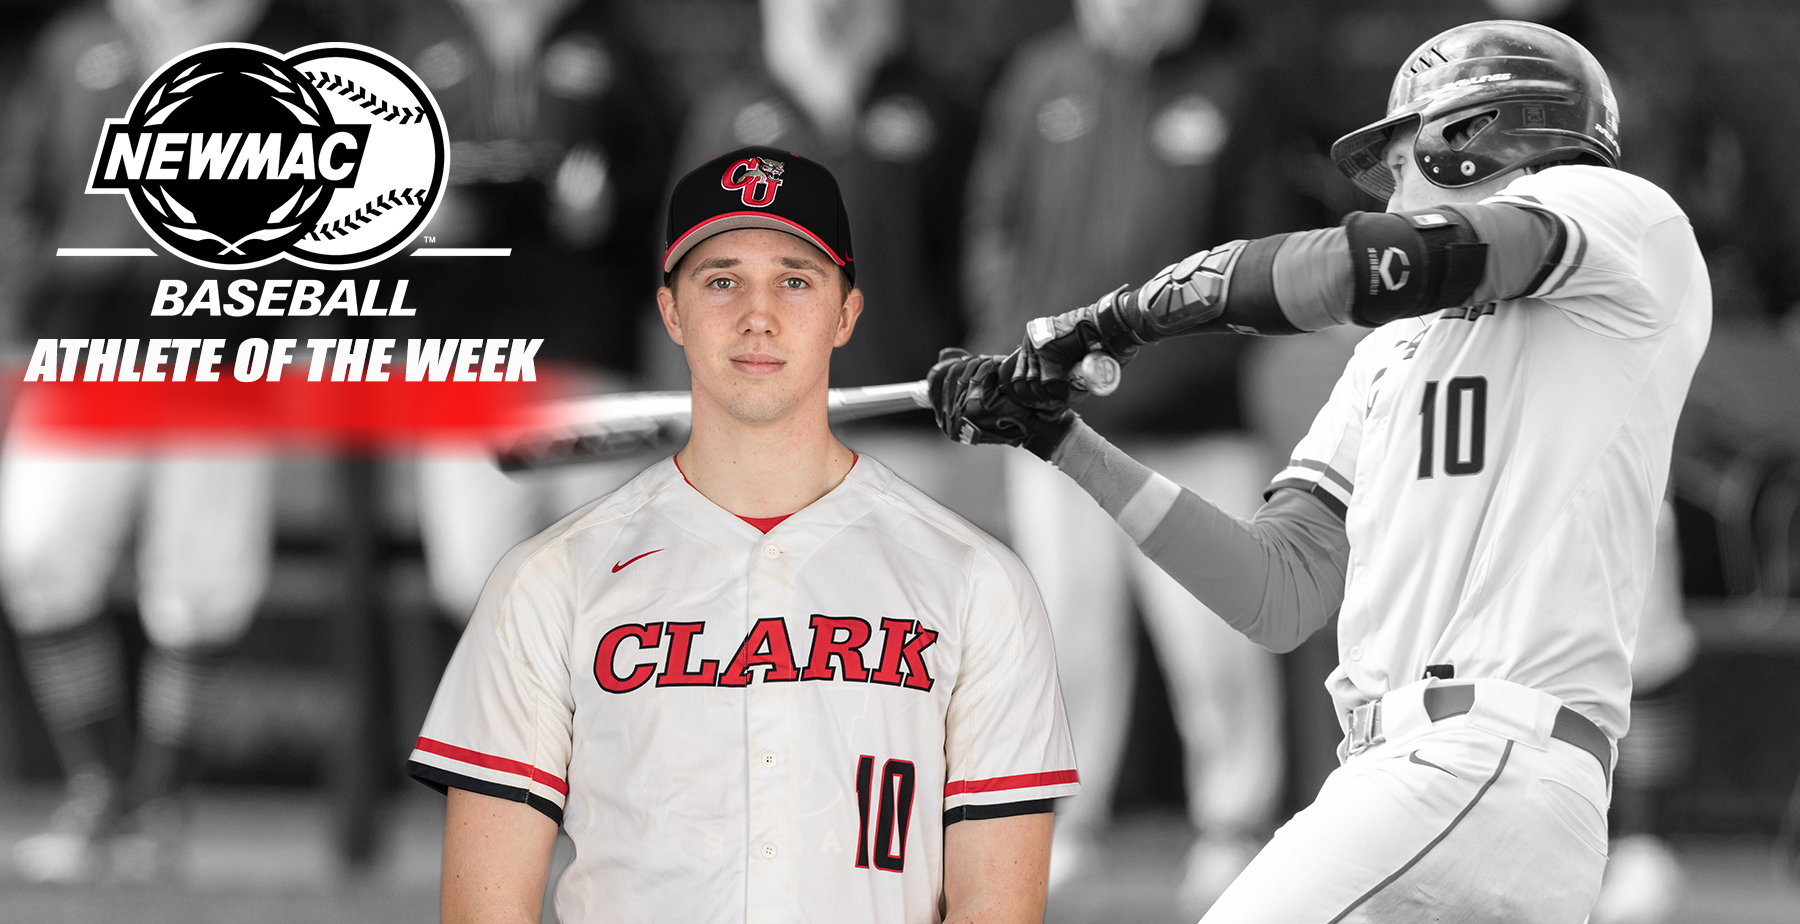 Radovic Named NEWMAC Baseball Athlete of the Week